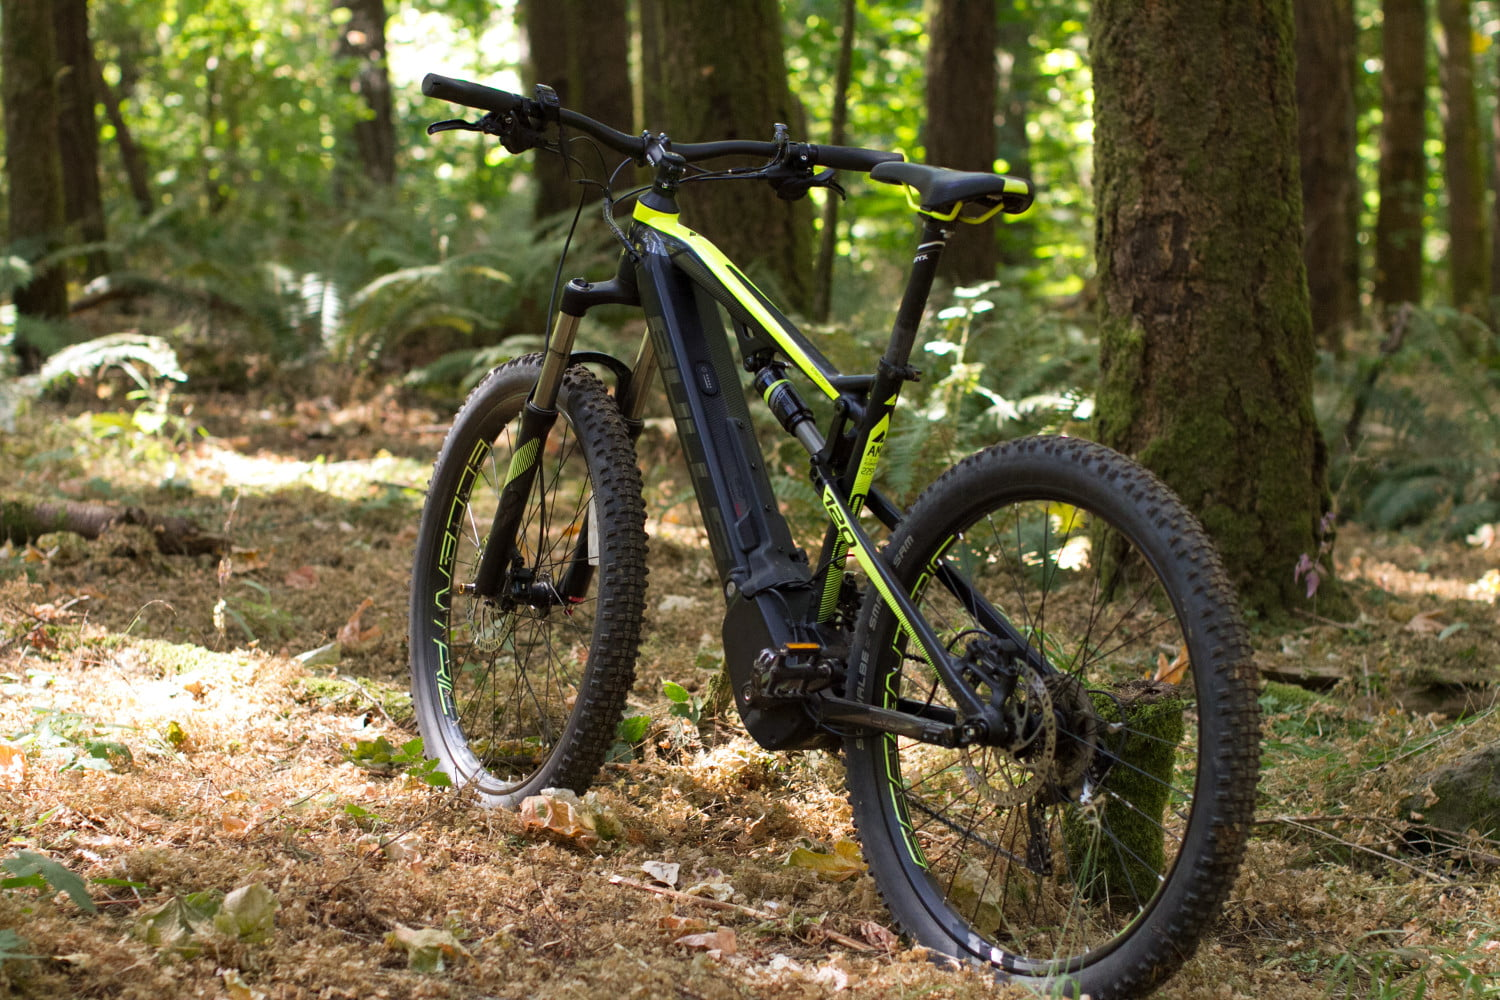 Bulls E-Stream EVO FS 2 27.5 Plus Review: Conquer tarmac and dirt with equal ease